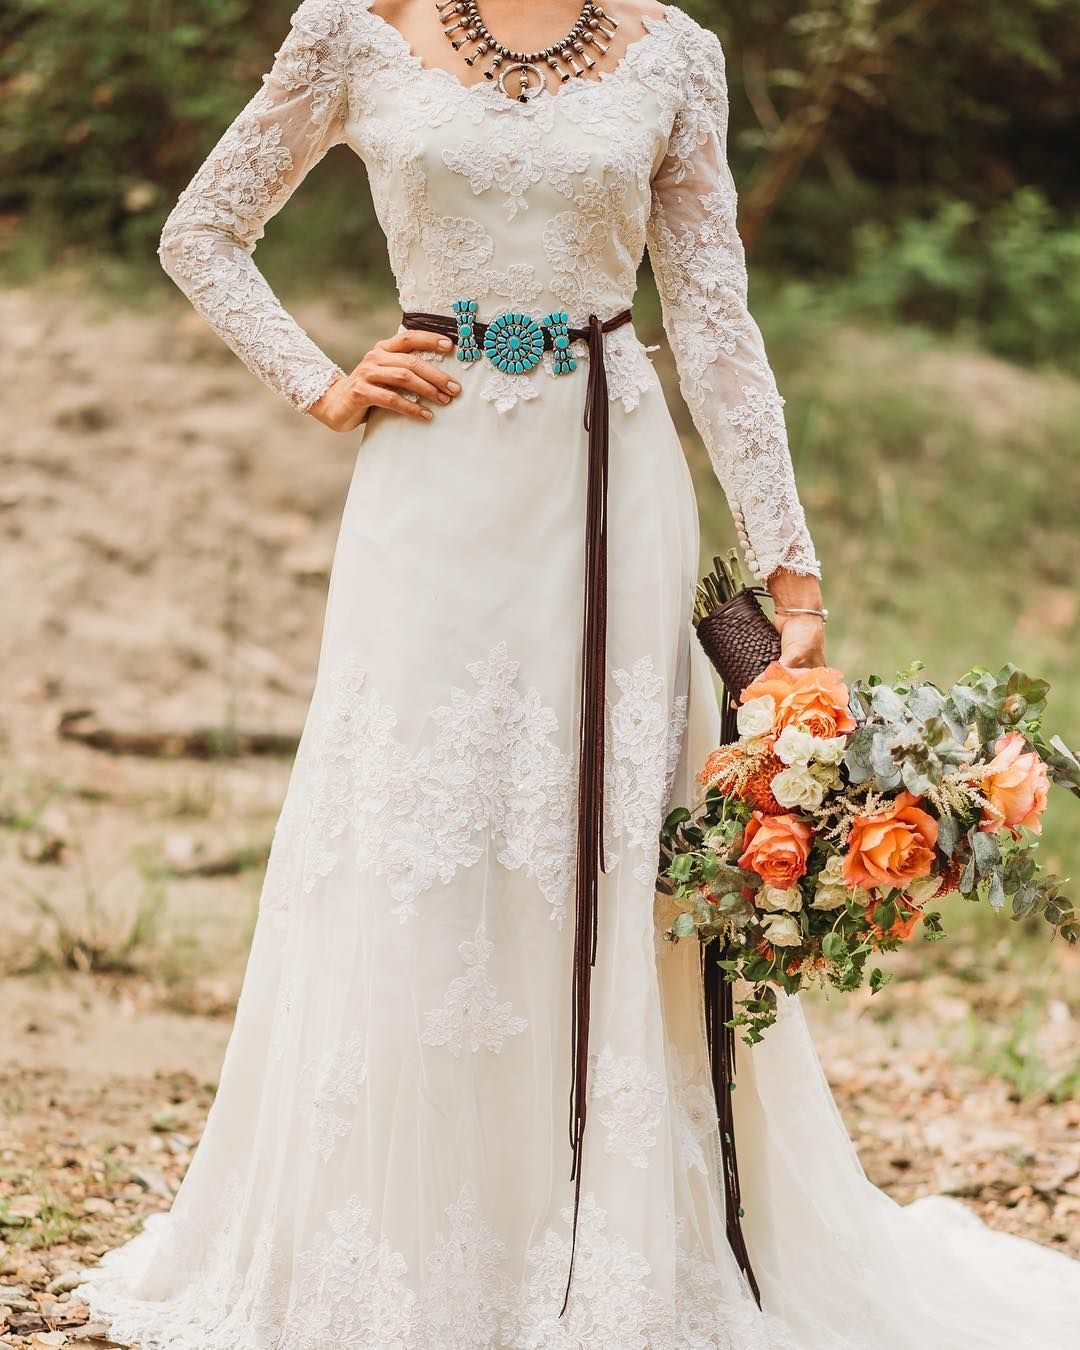 Let Us Complete Your Wedding Day Look With Our Custom Made Leather Accessories Ta Turquoise Wedding Dresses Southwestern Wedding Dress Western Wedding Dresses [ 1350 x 1080 Pixel ]